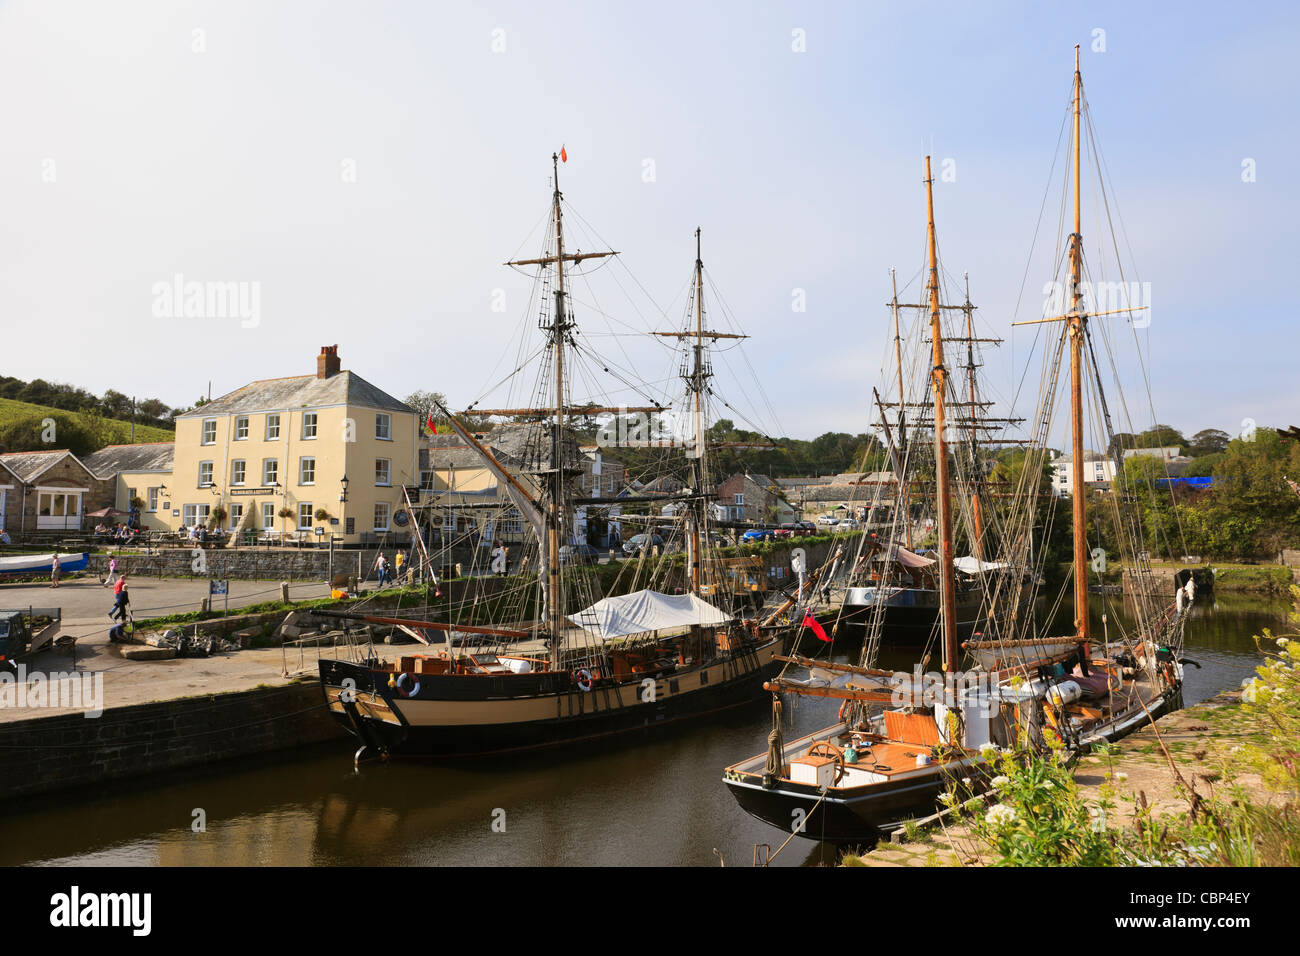 Charlestown, Cornwall, England, UK, Britain. Tall ships in the inner harbour with the Pier House Hotel on the quayside - Stock Image